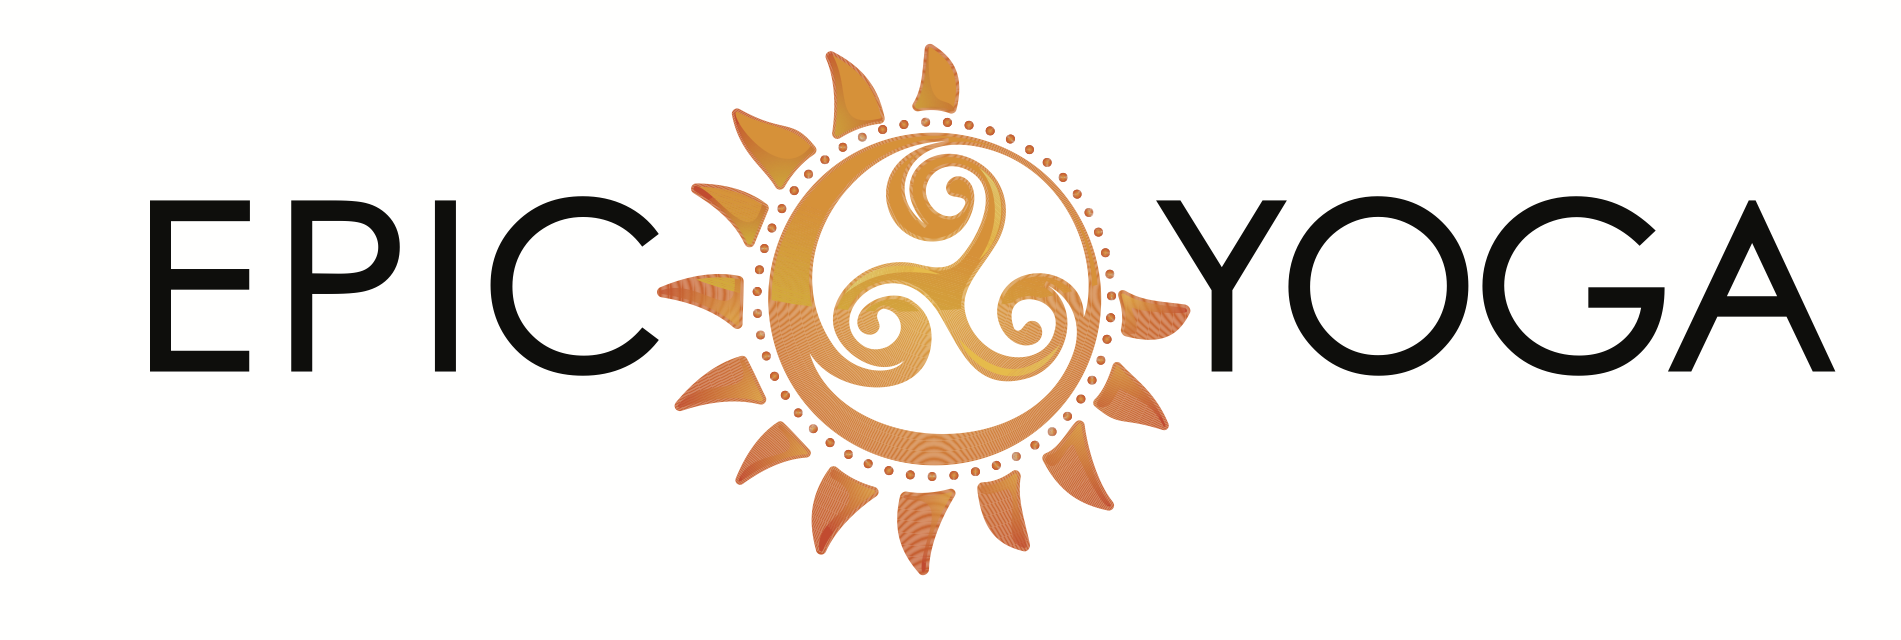 EPIC YOGA LOGO copy.png